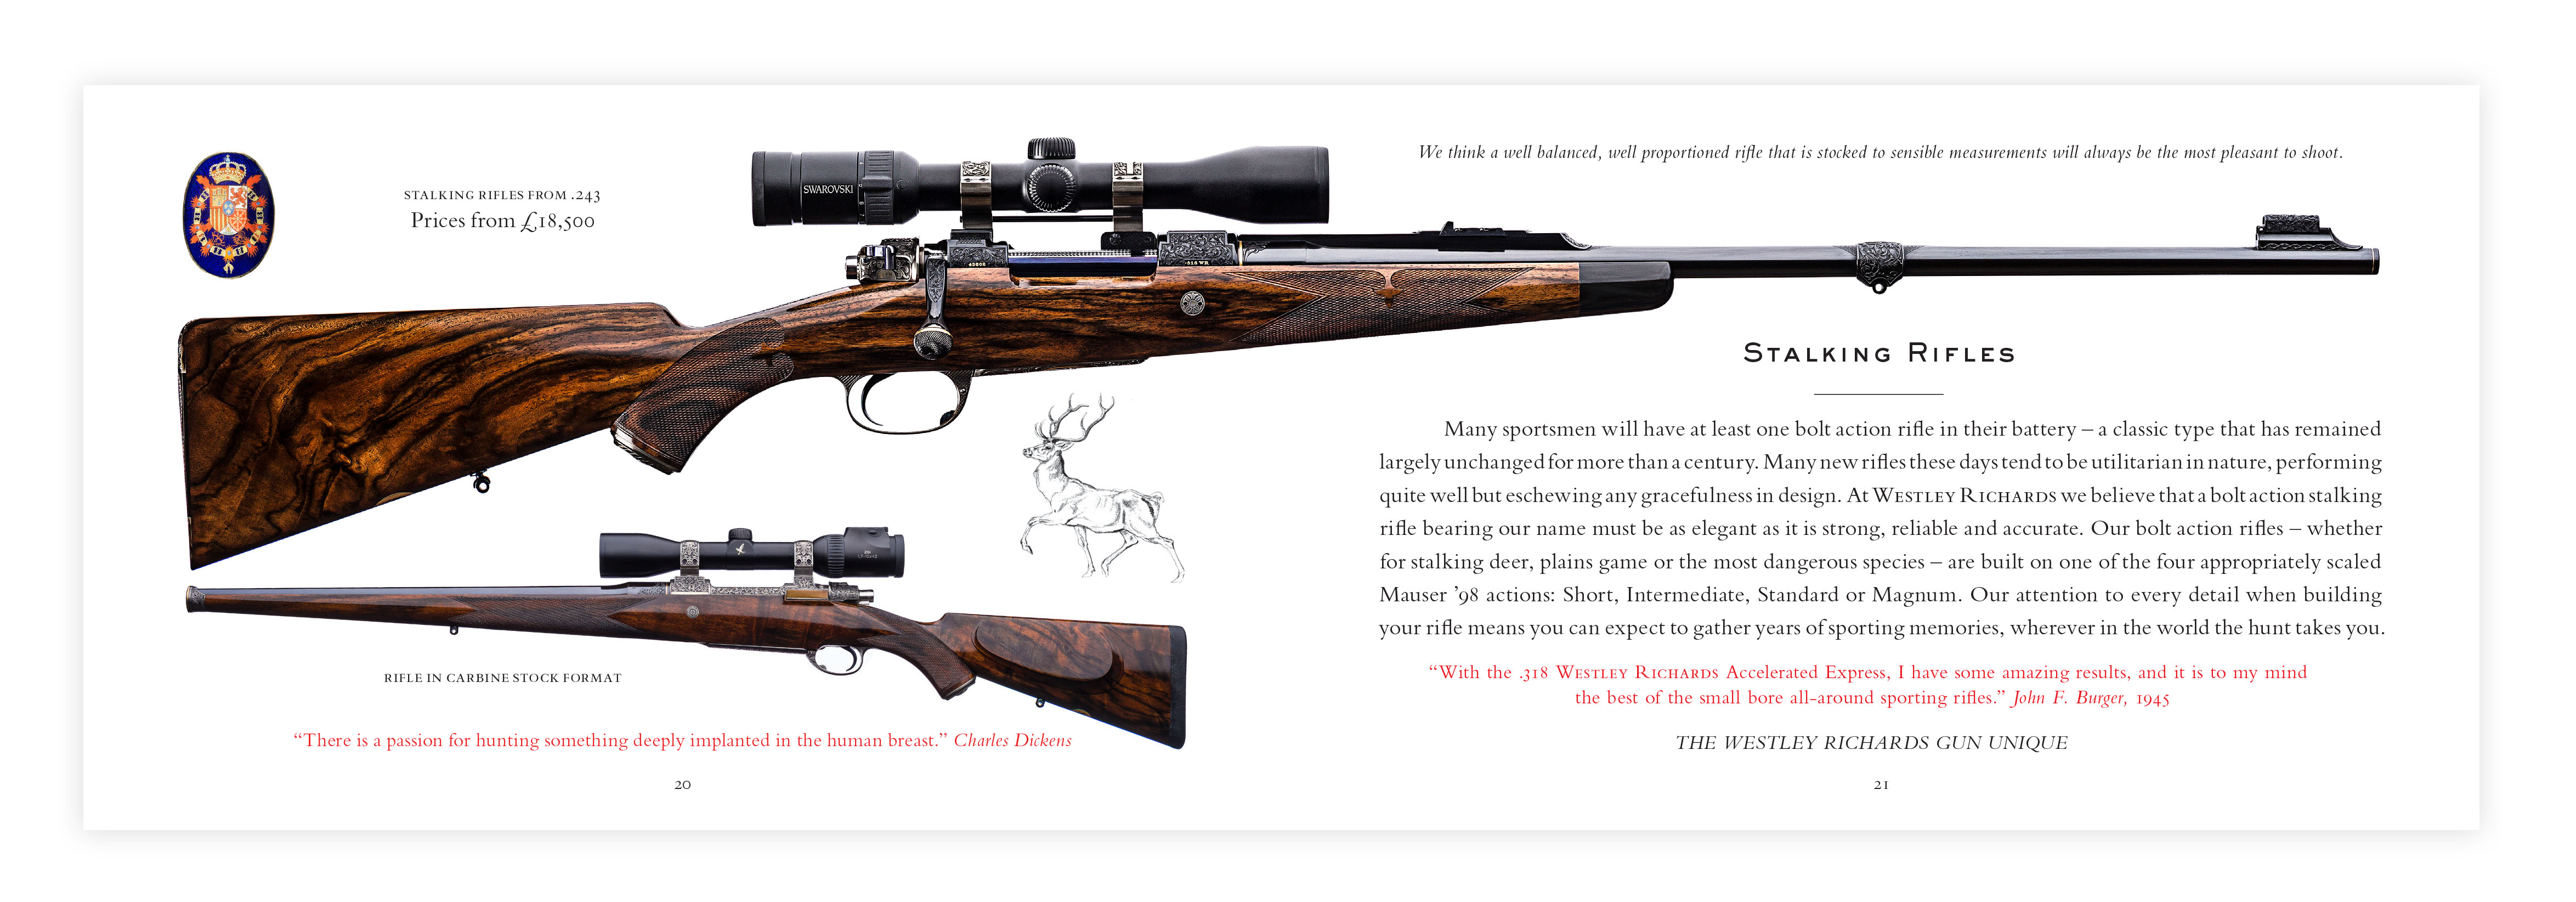 How Accurate Do Our Rifles Need to Be? Guest Post by David Hack.